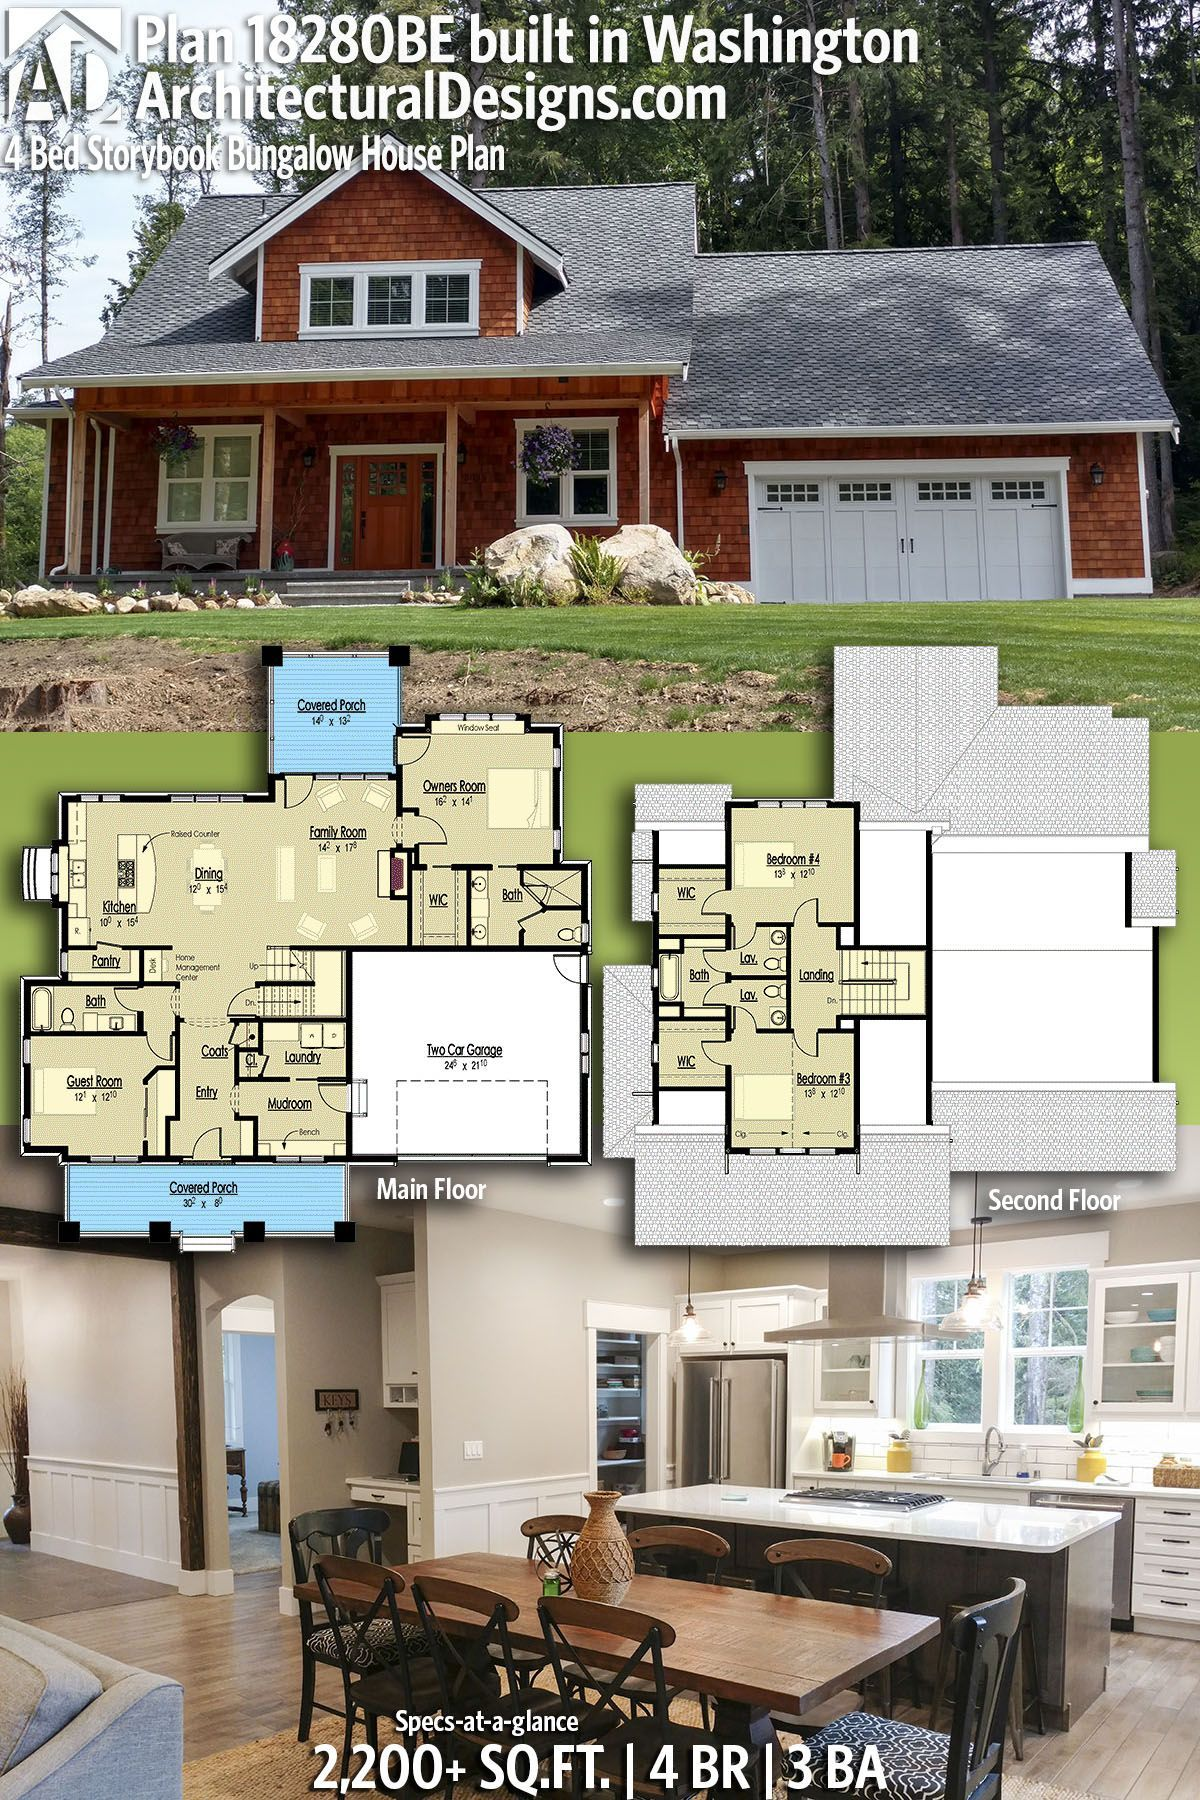 Architectural Designs House Plan 18280BE 4BR | 3BA | 2,200+SQ.FT.e